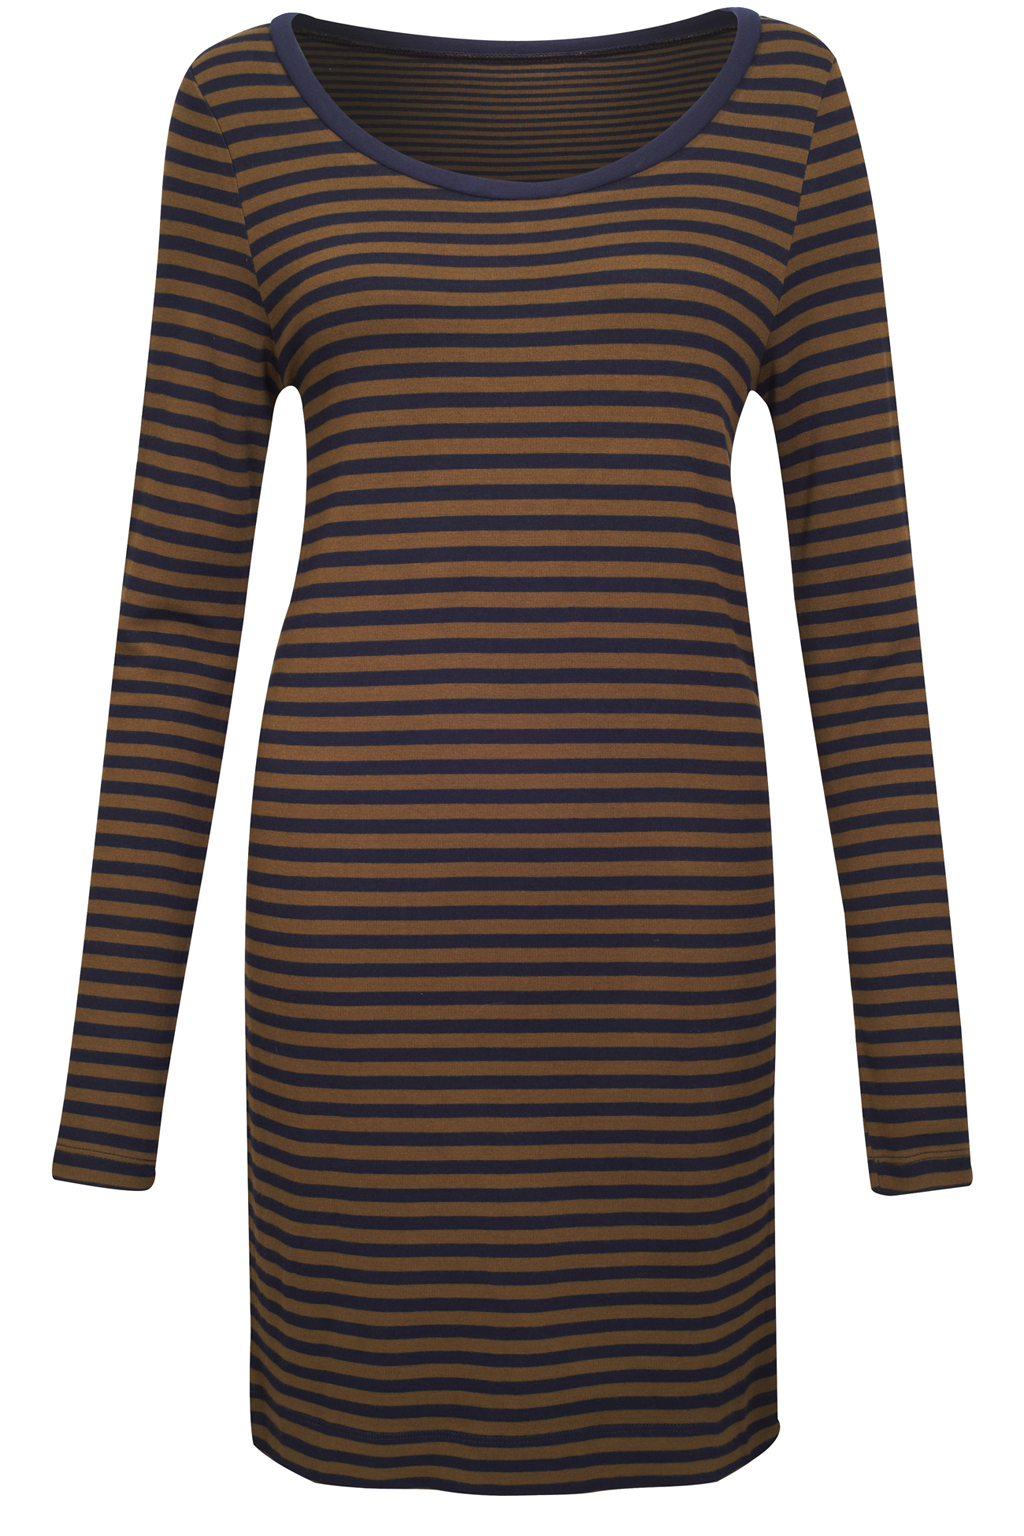 Truro striped t shirt dress woman old season french for French connection t shirt dress